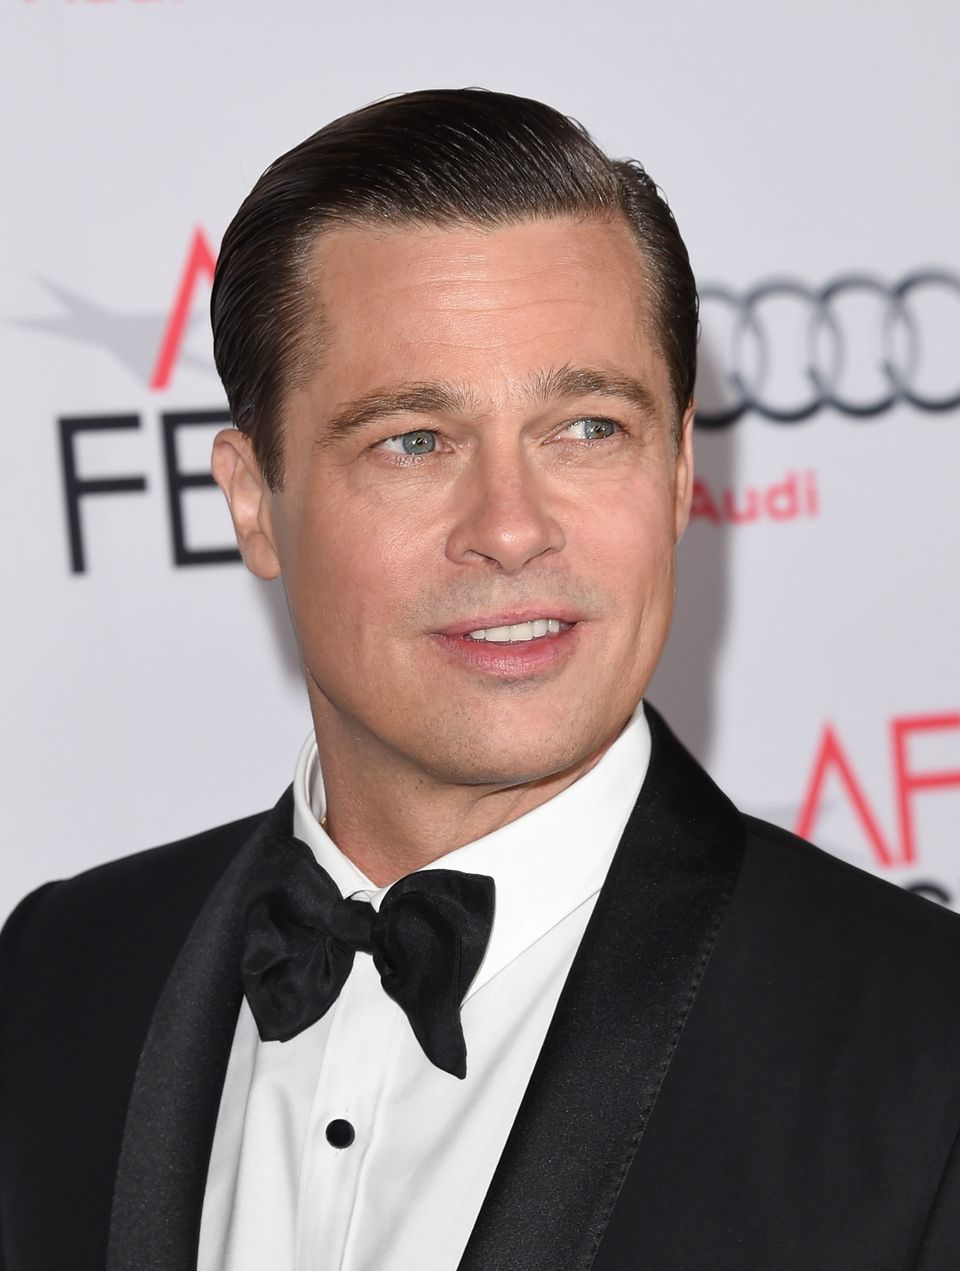 12 photos of clean shaven celebrities to help you mourn your